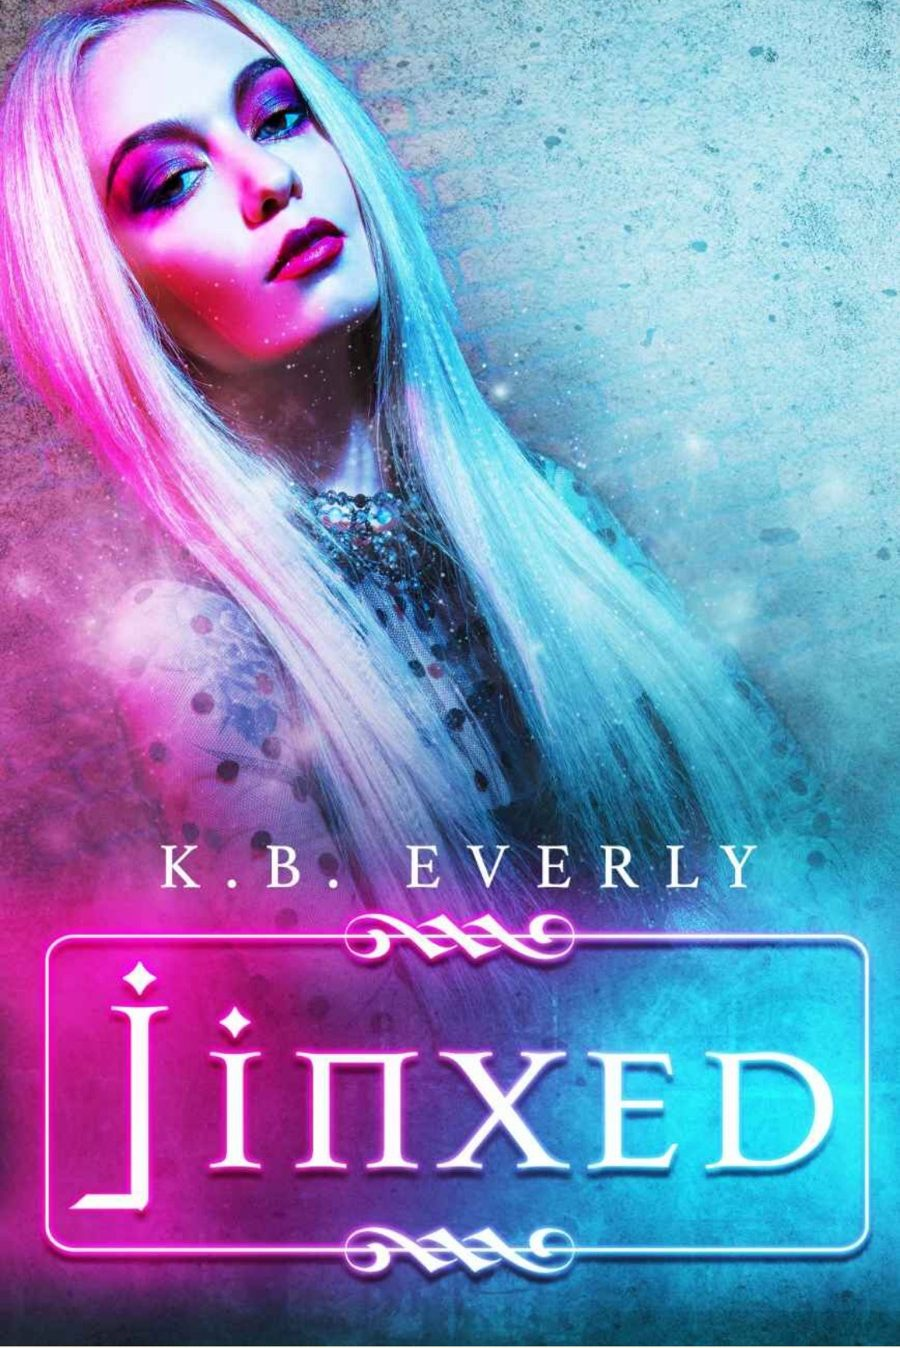 Jinxed *Toxic Bitchcraft - Book 1* by K.B. Everly - A Book Review #BookReview #WhyChoose #Slow/MedBurn #RH #PNR #Witch #Paranormal #Funny